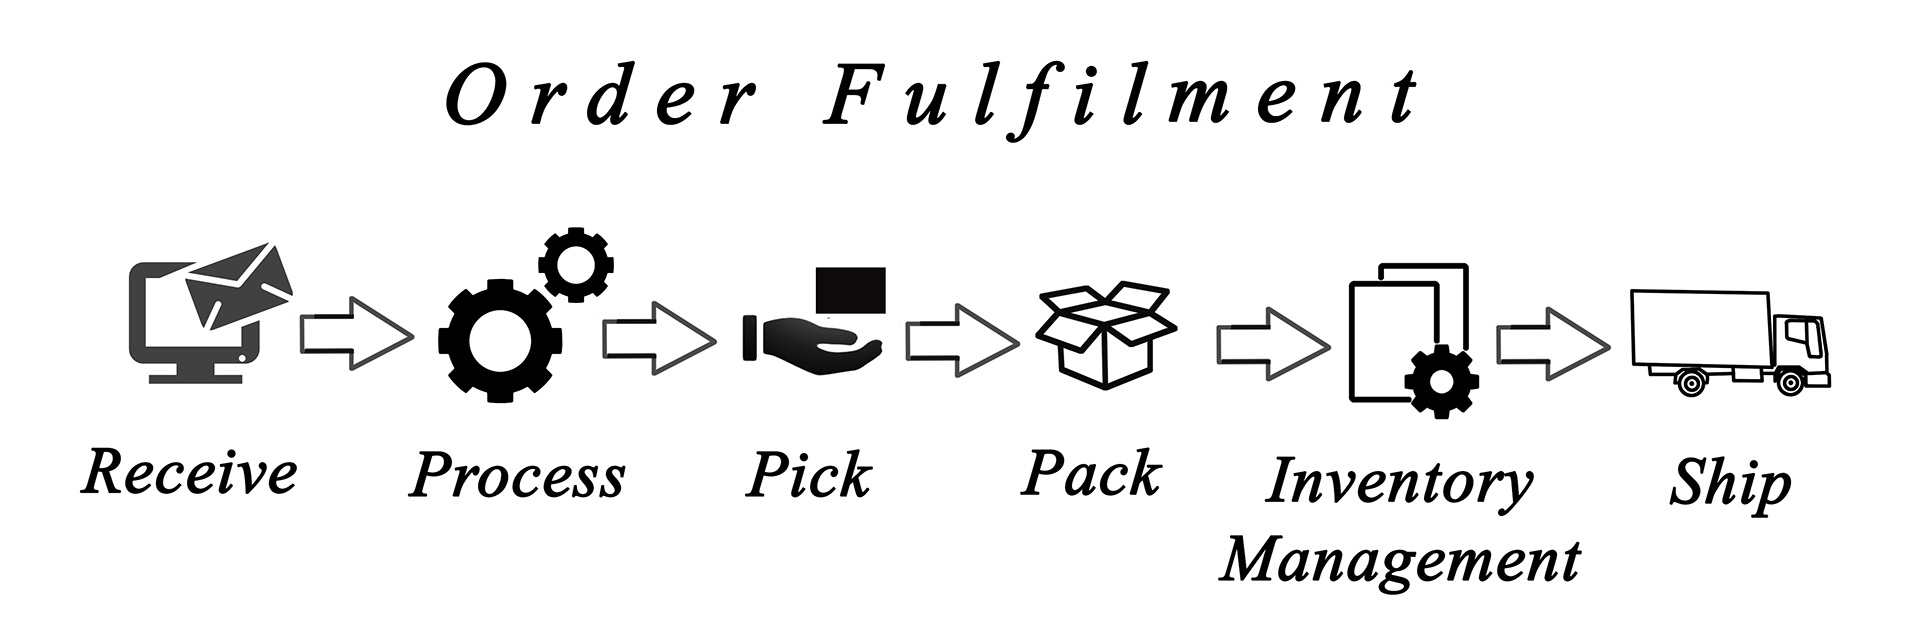 Why Fulfilment - Product Fulfilment